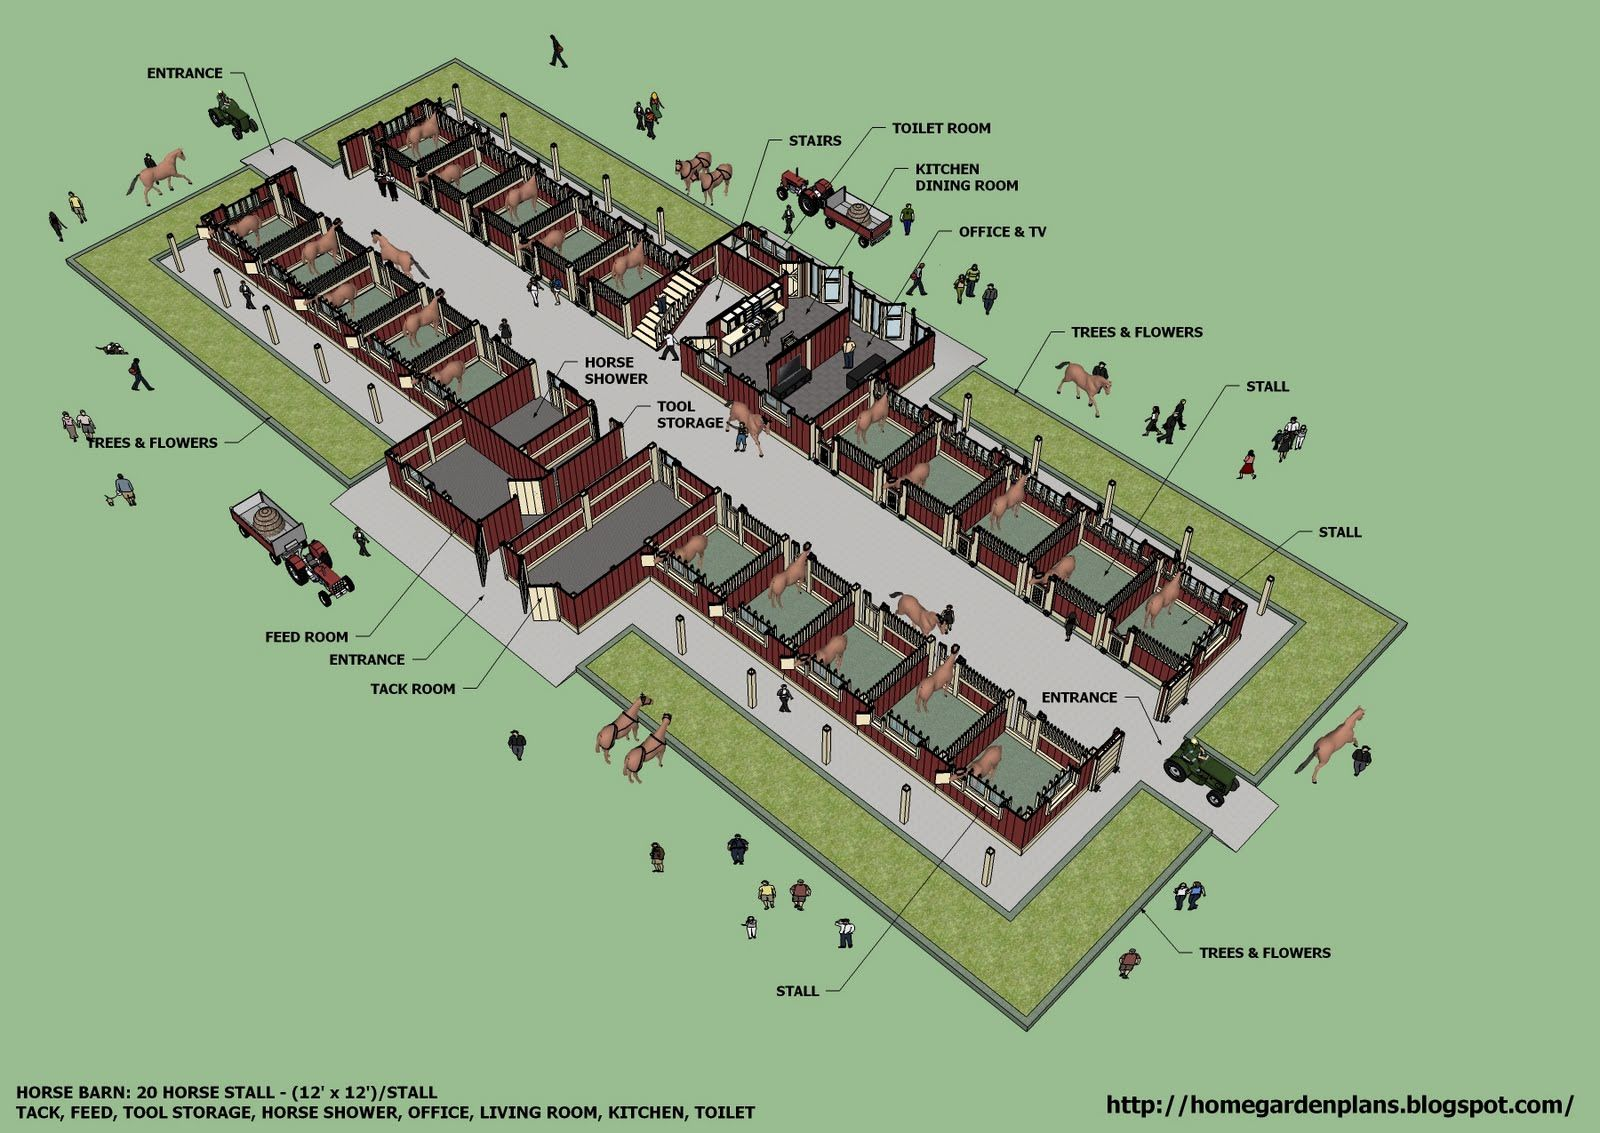 home garden plans b20h large horse barn for 20 horse stall 20 stall